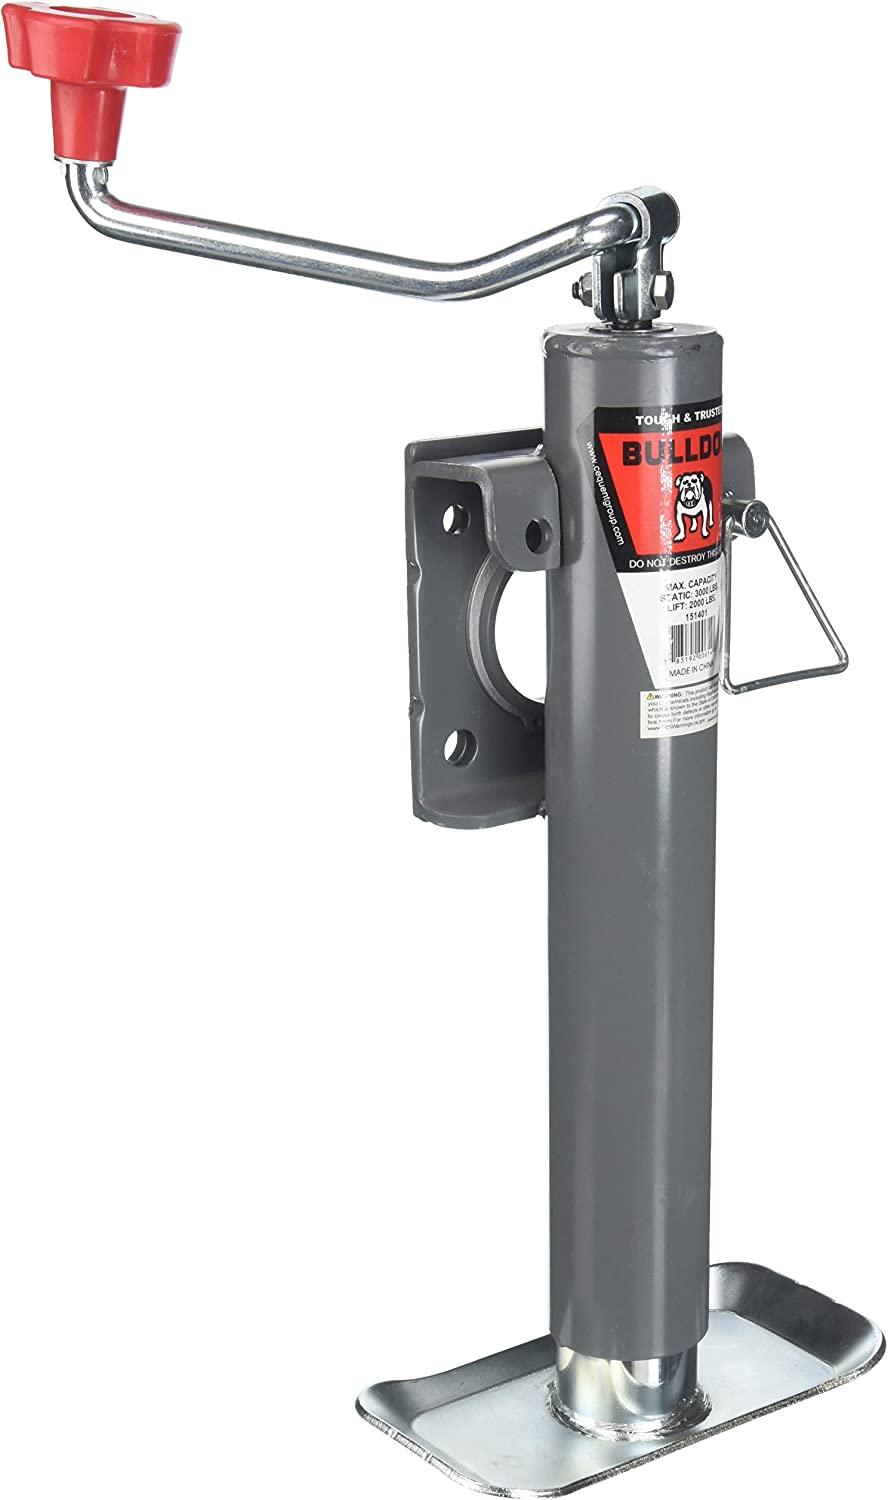 Bulldog 151401 Weld-On Swivel Jack